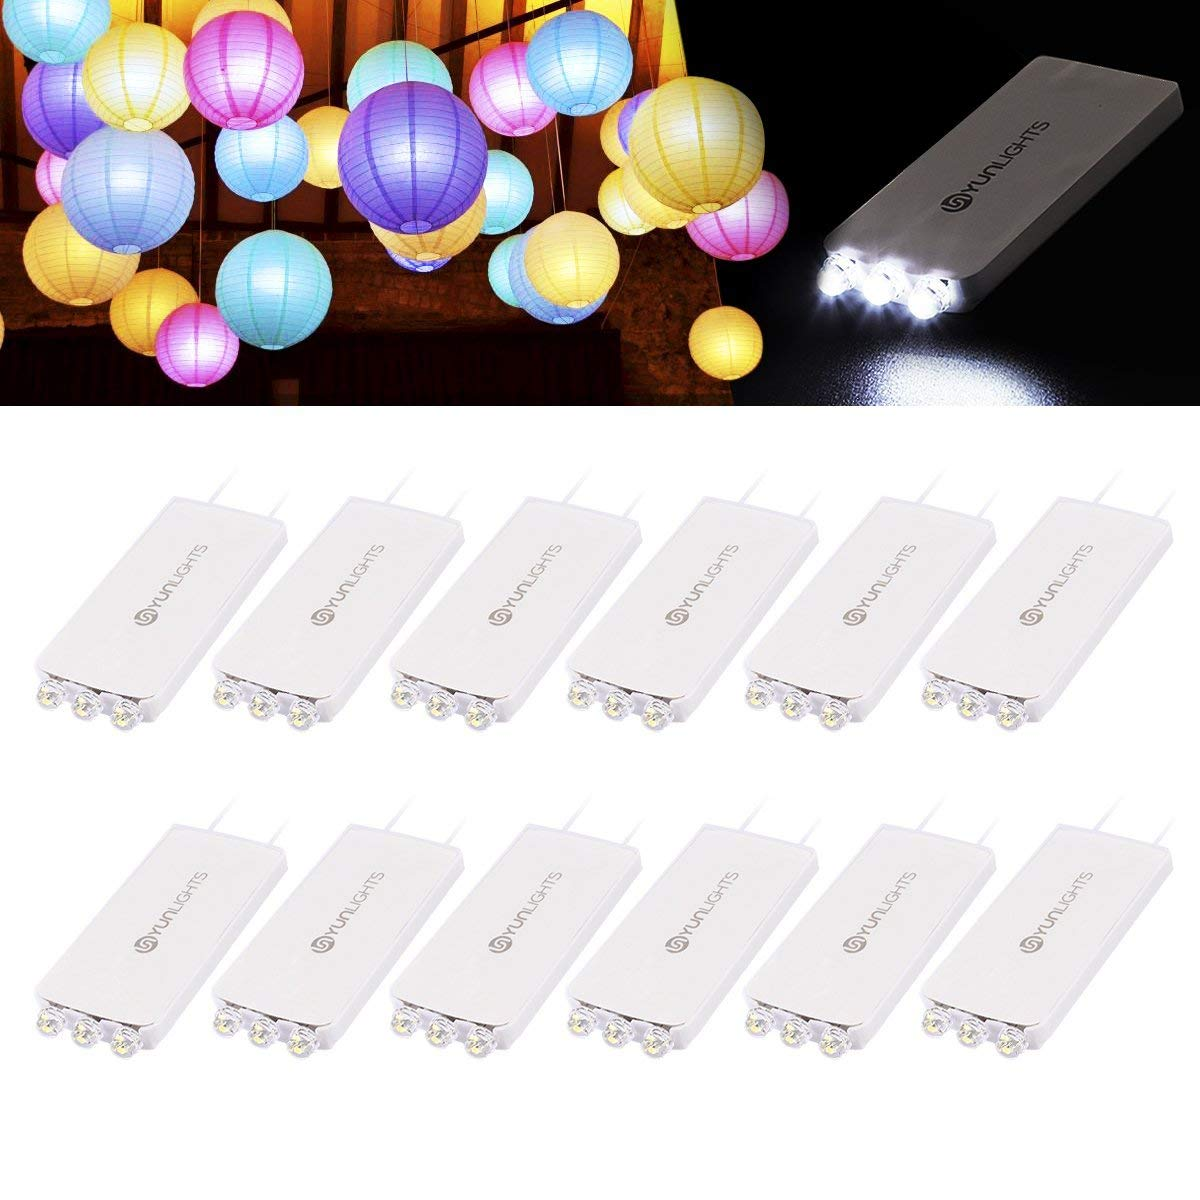 10 Pack LED Lights for Paper Lanterns Balloons Wedding Birthday Party Decoration, Waterproof, Warm White Lights with 3 LEDs YUNLIGHTS